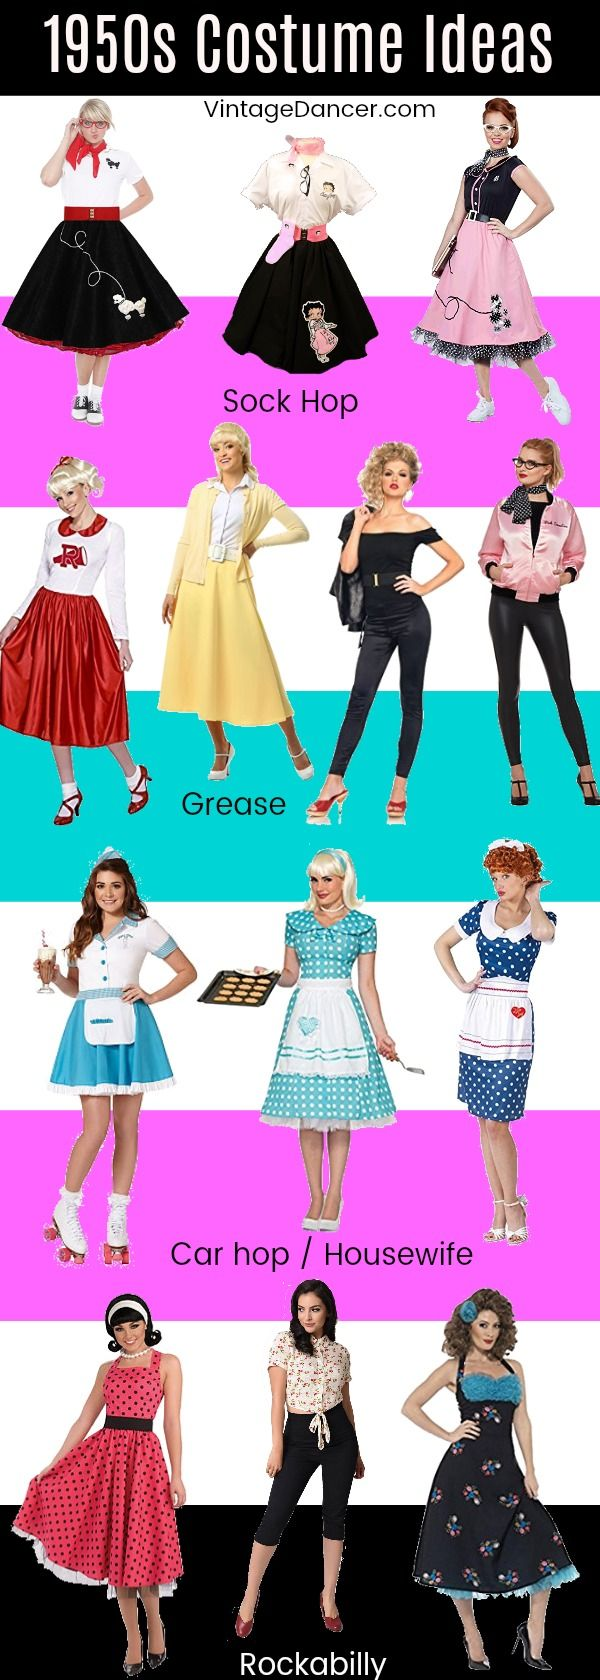 73e40f616fc Fun 1950s Costumes- Poodle Skirts, Monroe, Grease, Pin Up in 2019 ...